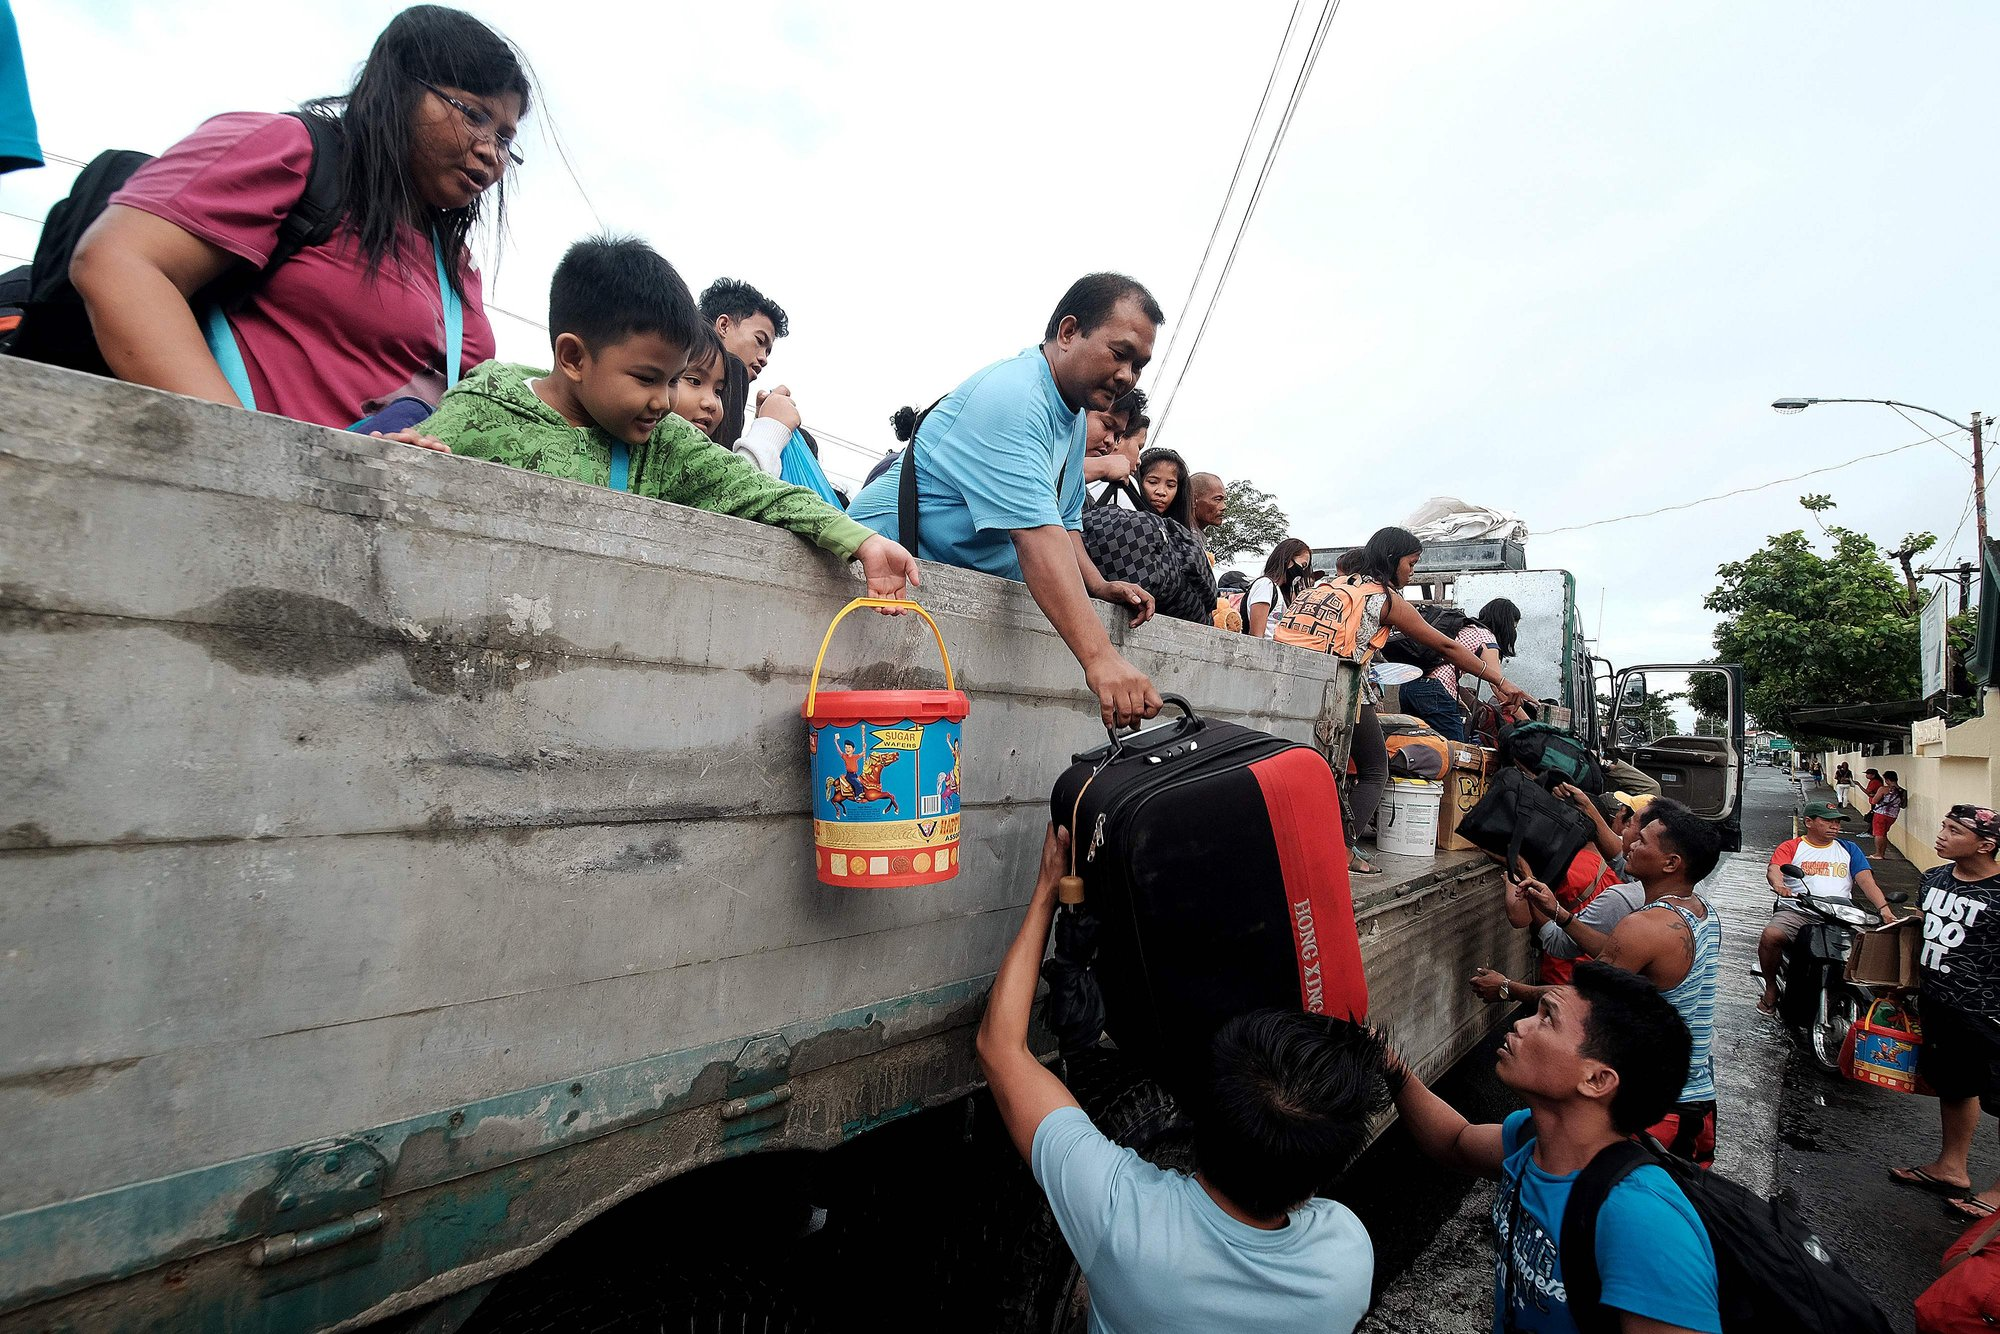 Evacuation of Storm Victims. Source: Getty